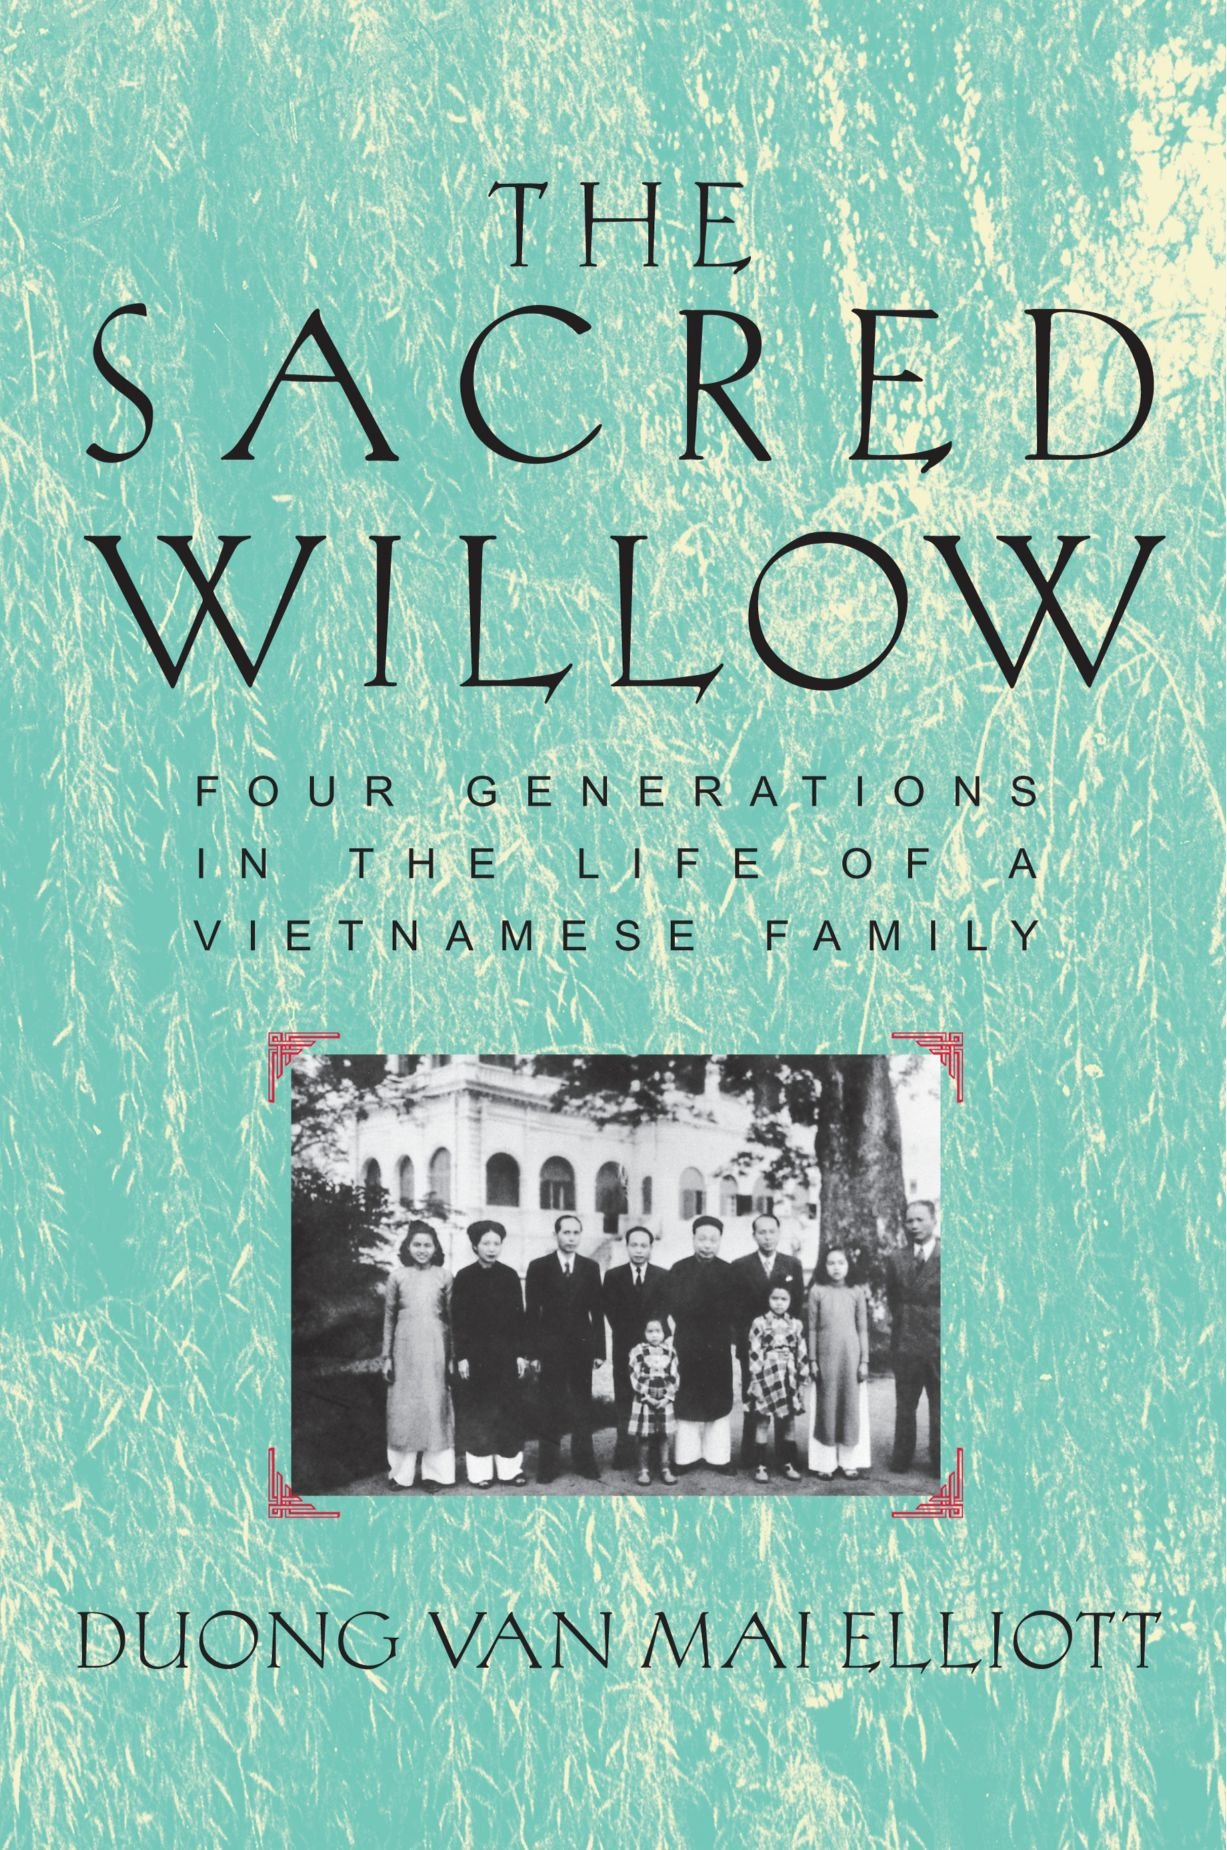 Amazon.com: The Sacred Willow: Four Generations in the Life of a Vietnamese  Family (9780195137873): Mai Elliott: Books